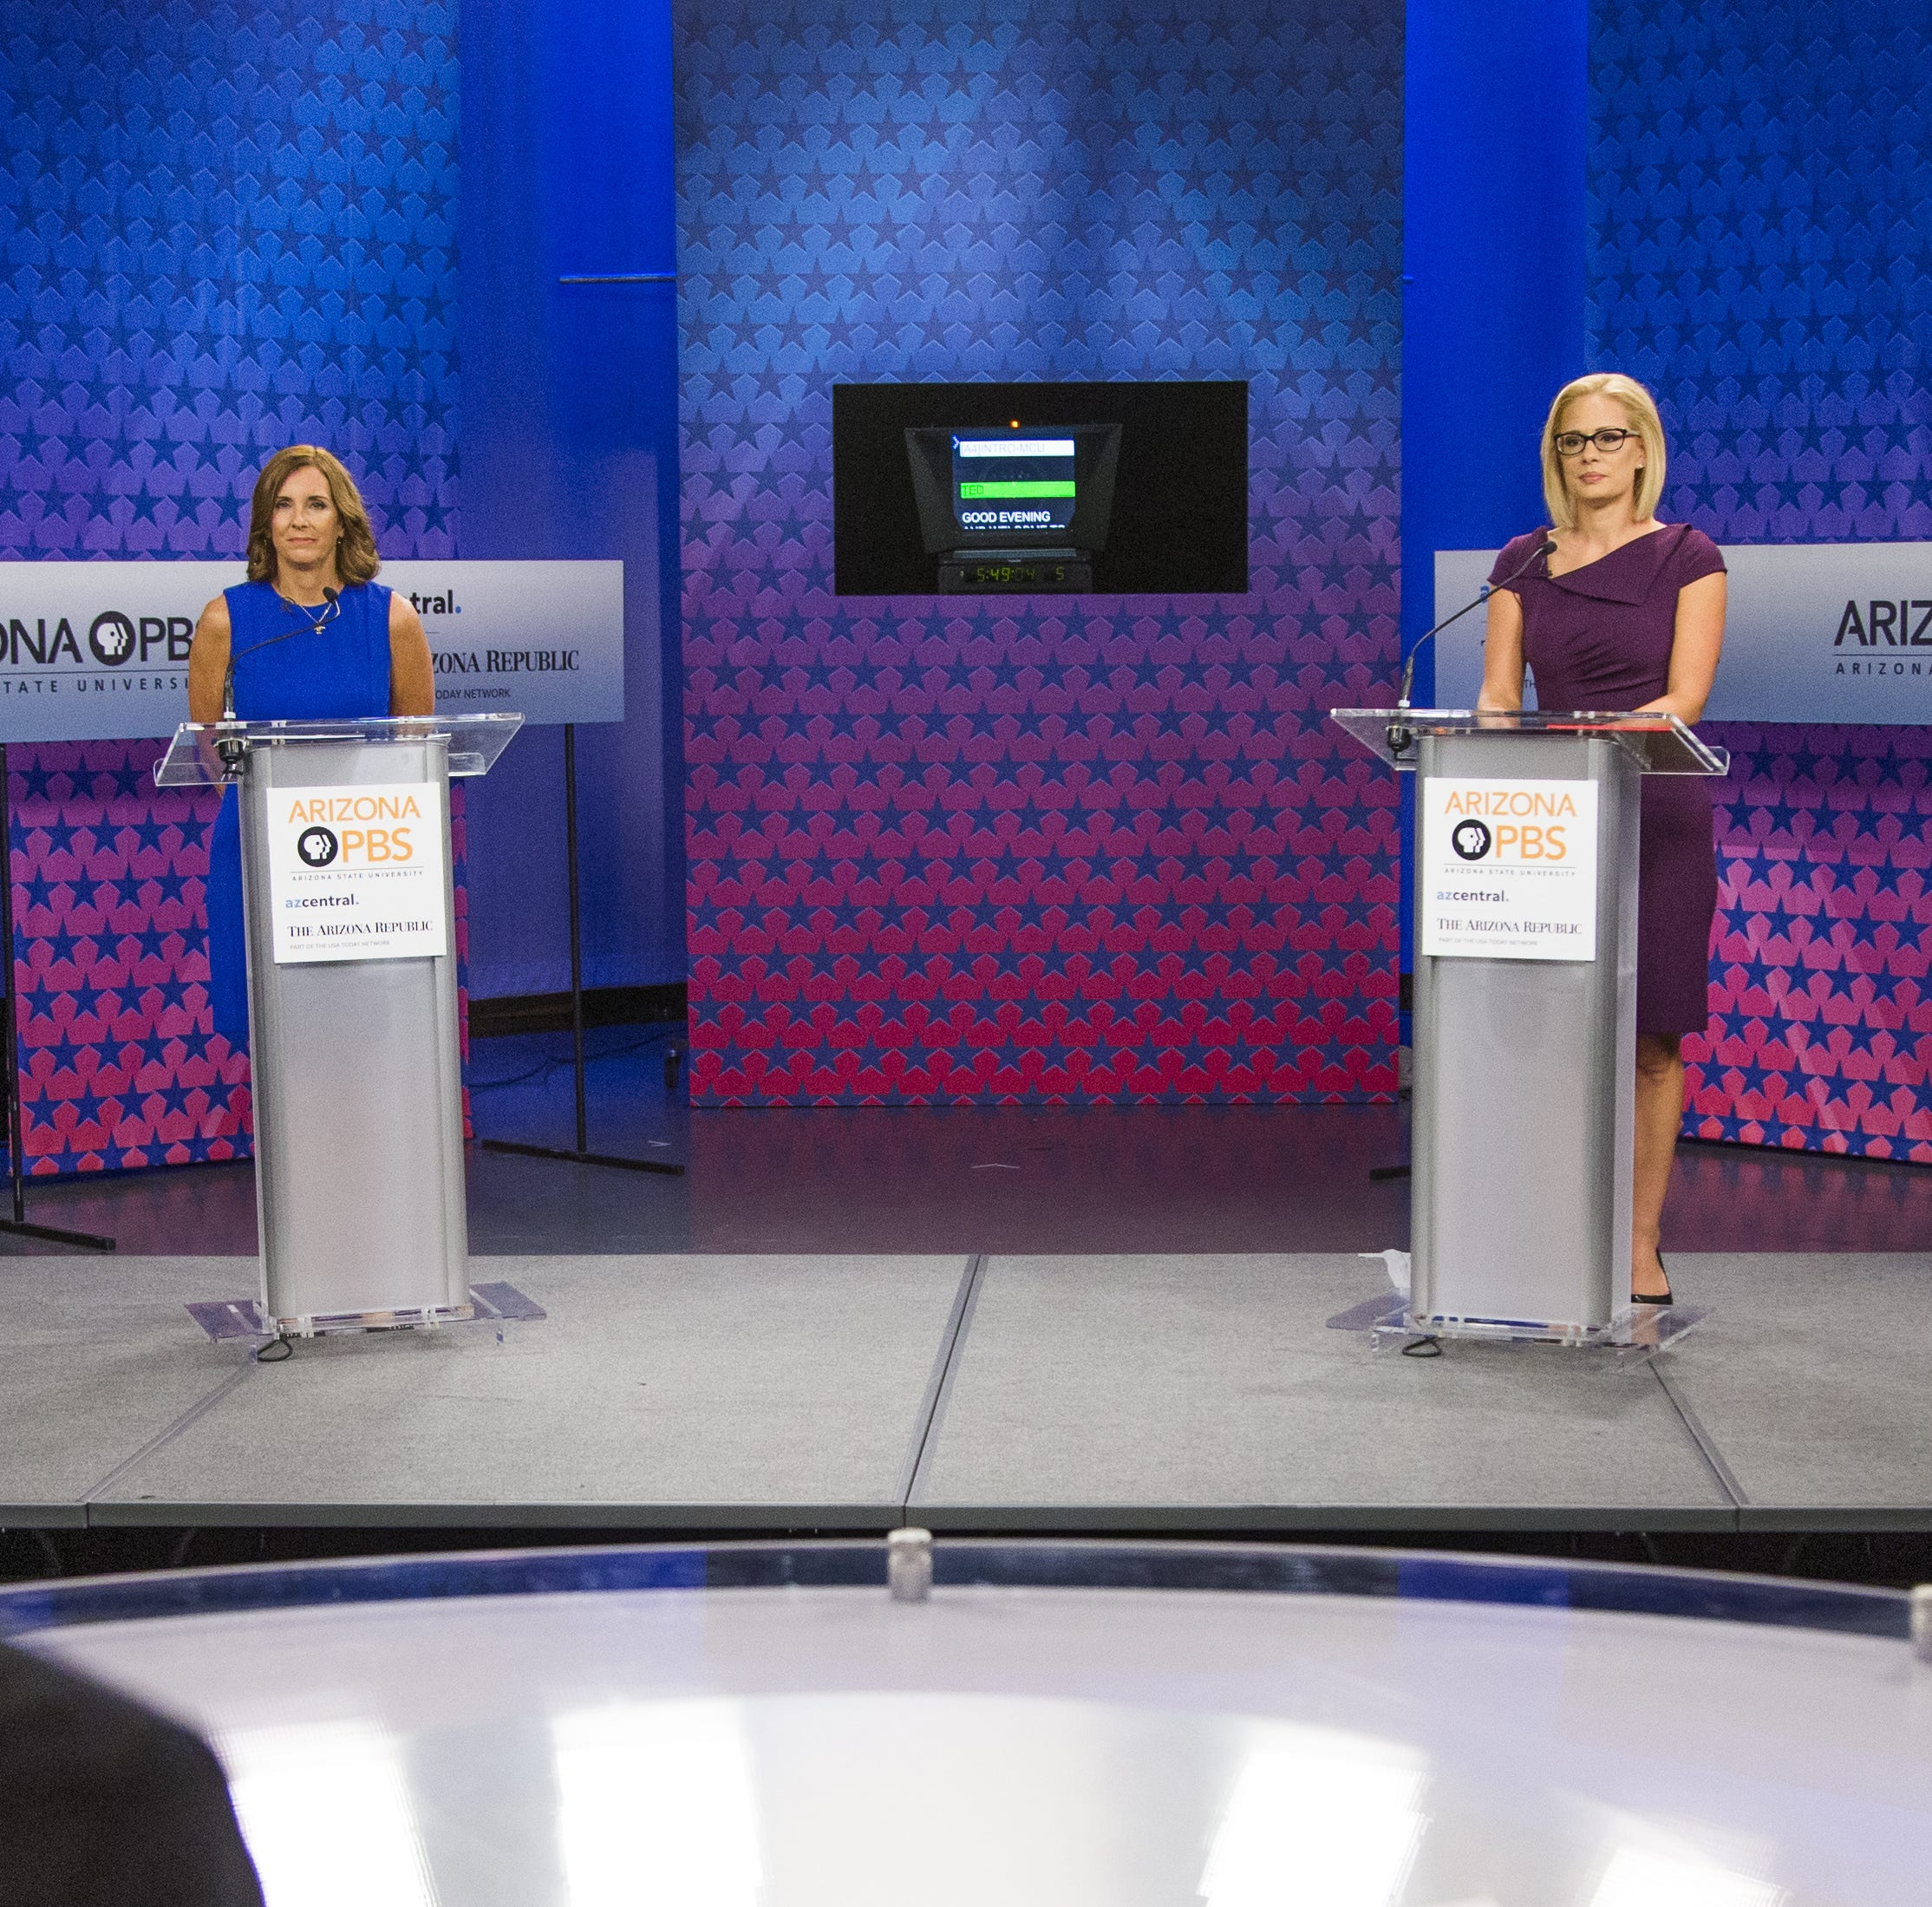 Debate expert breaks down body language, tone and tension during McSally-Sinema debate